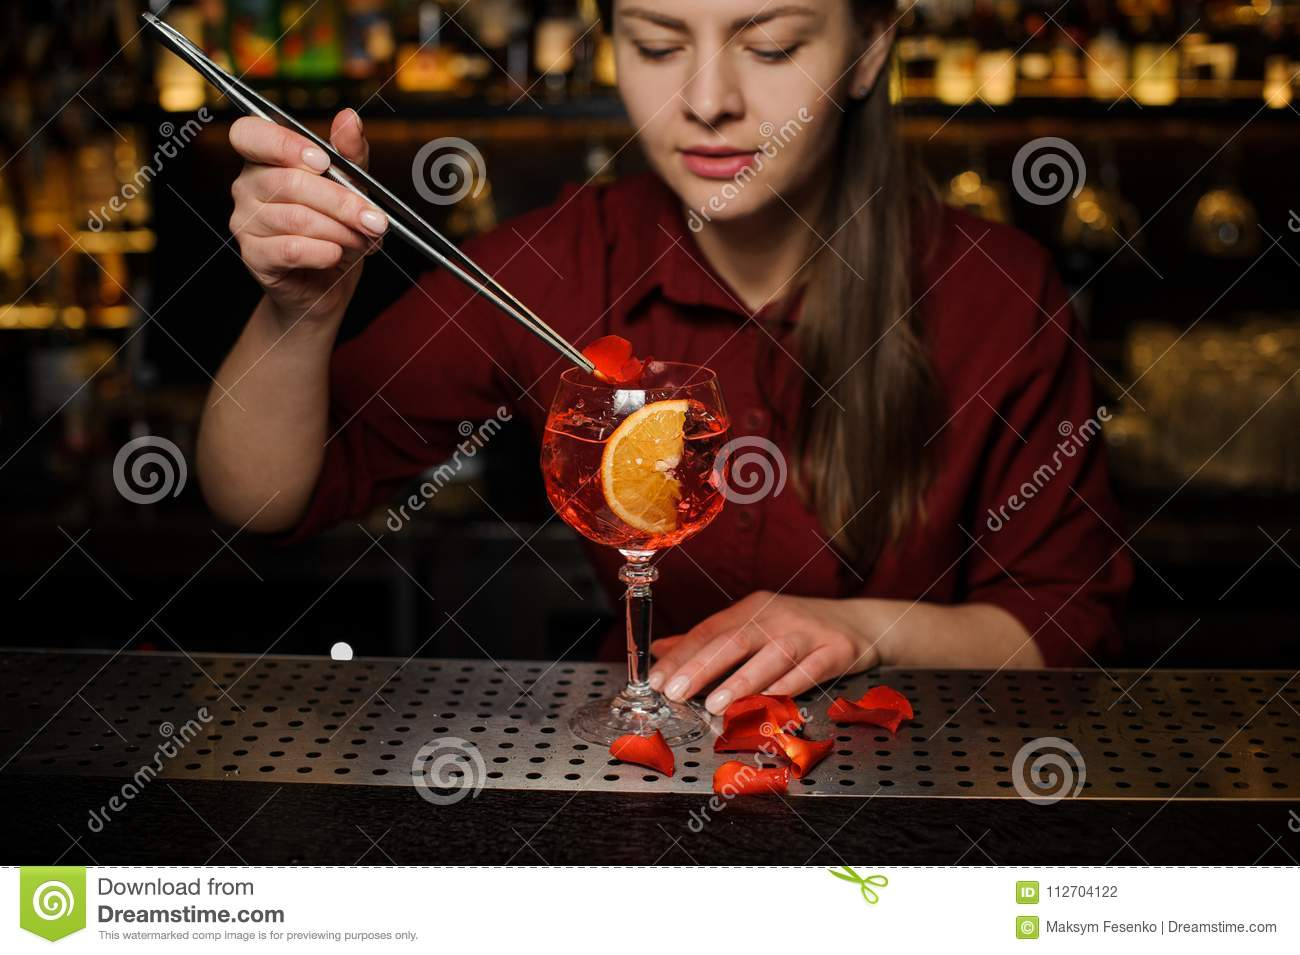 Woman Barman Decorating A Glass Of Aperol Syringe Cocktail With